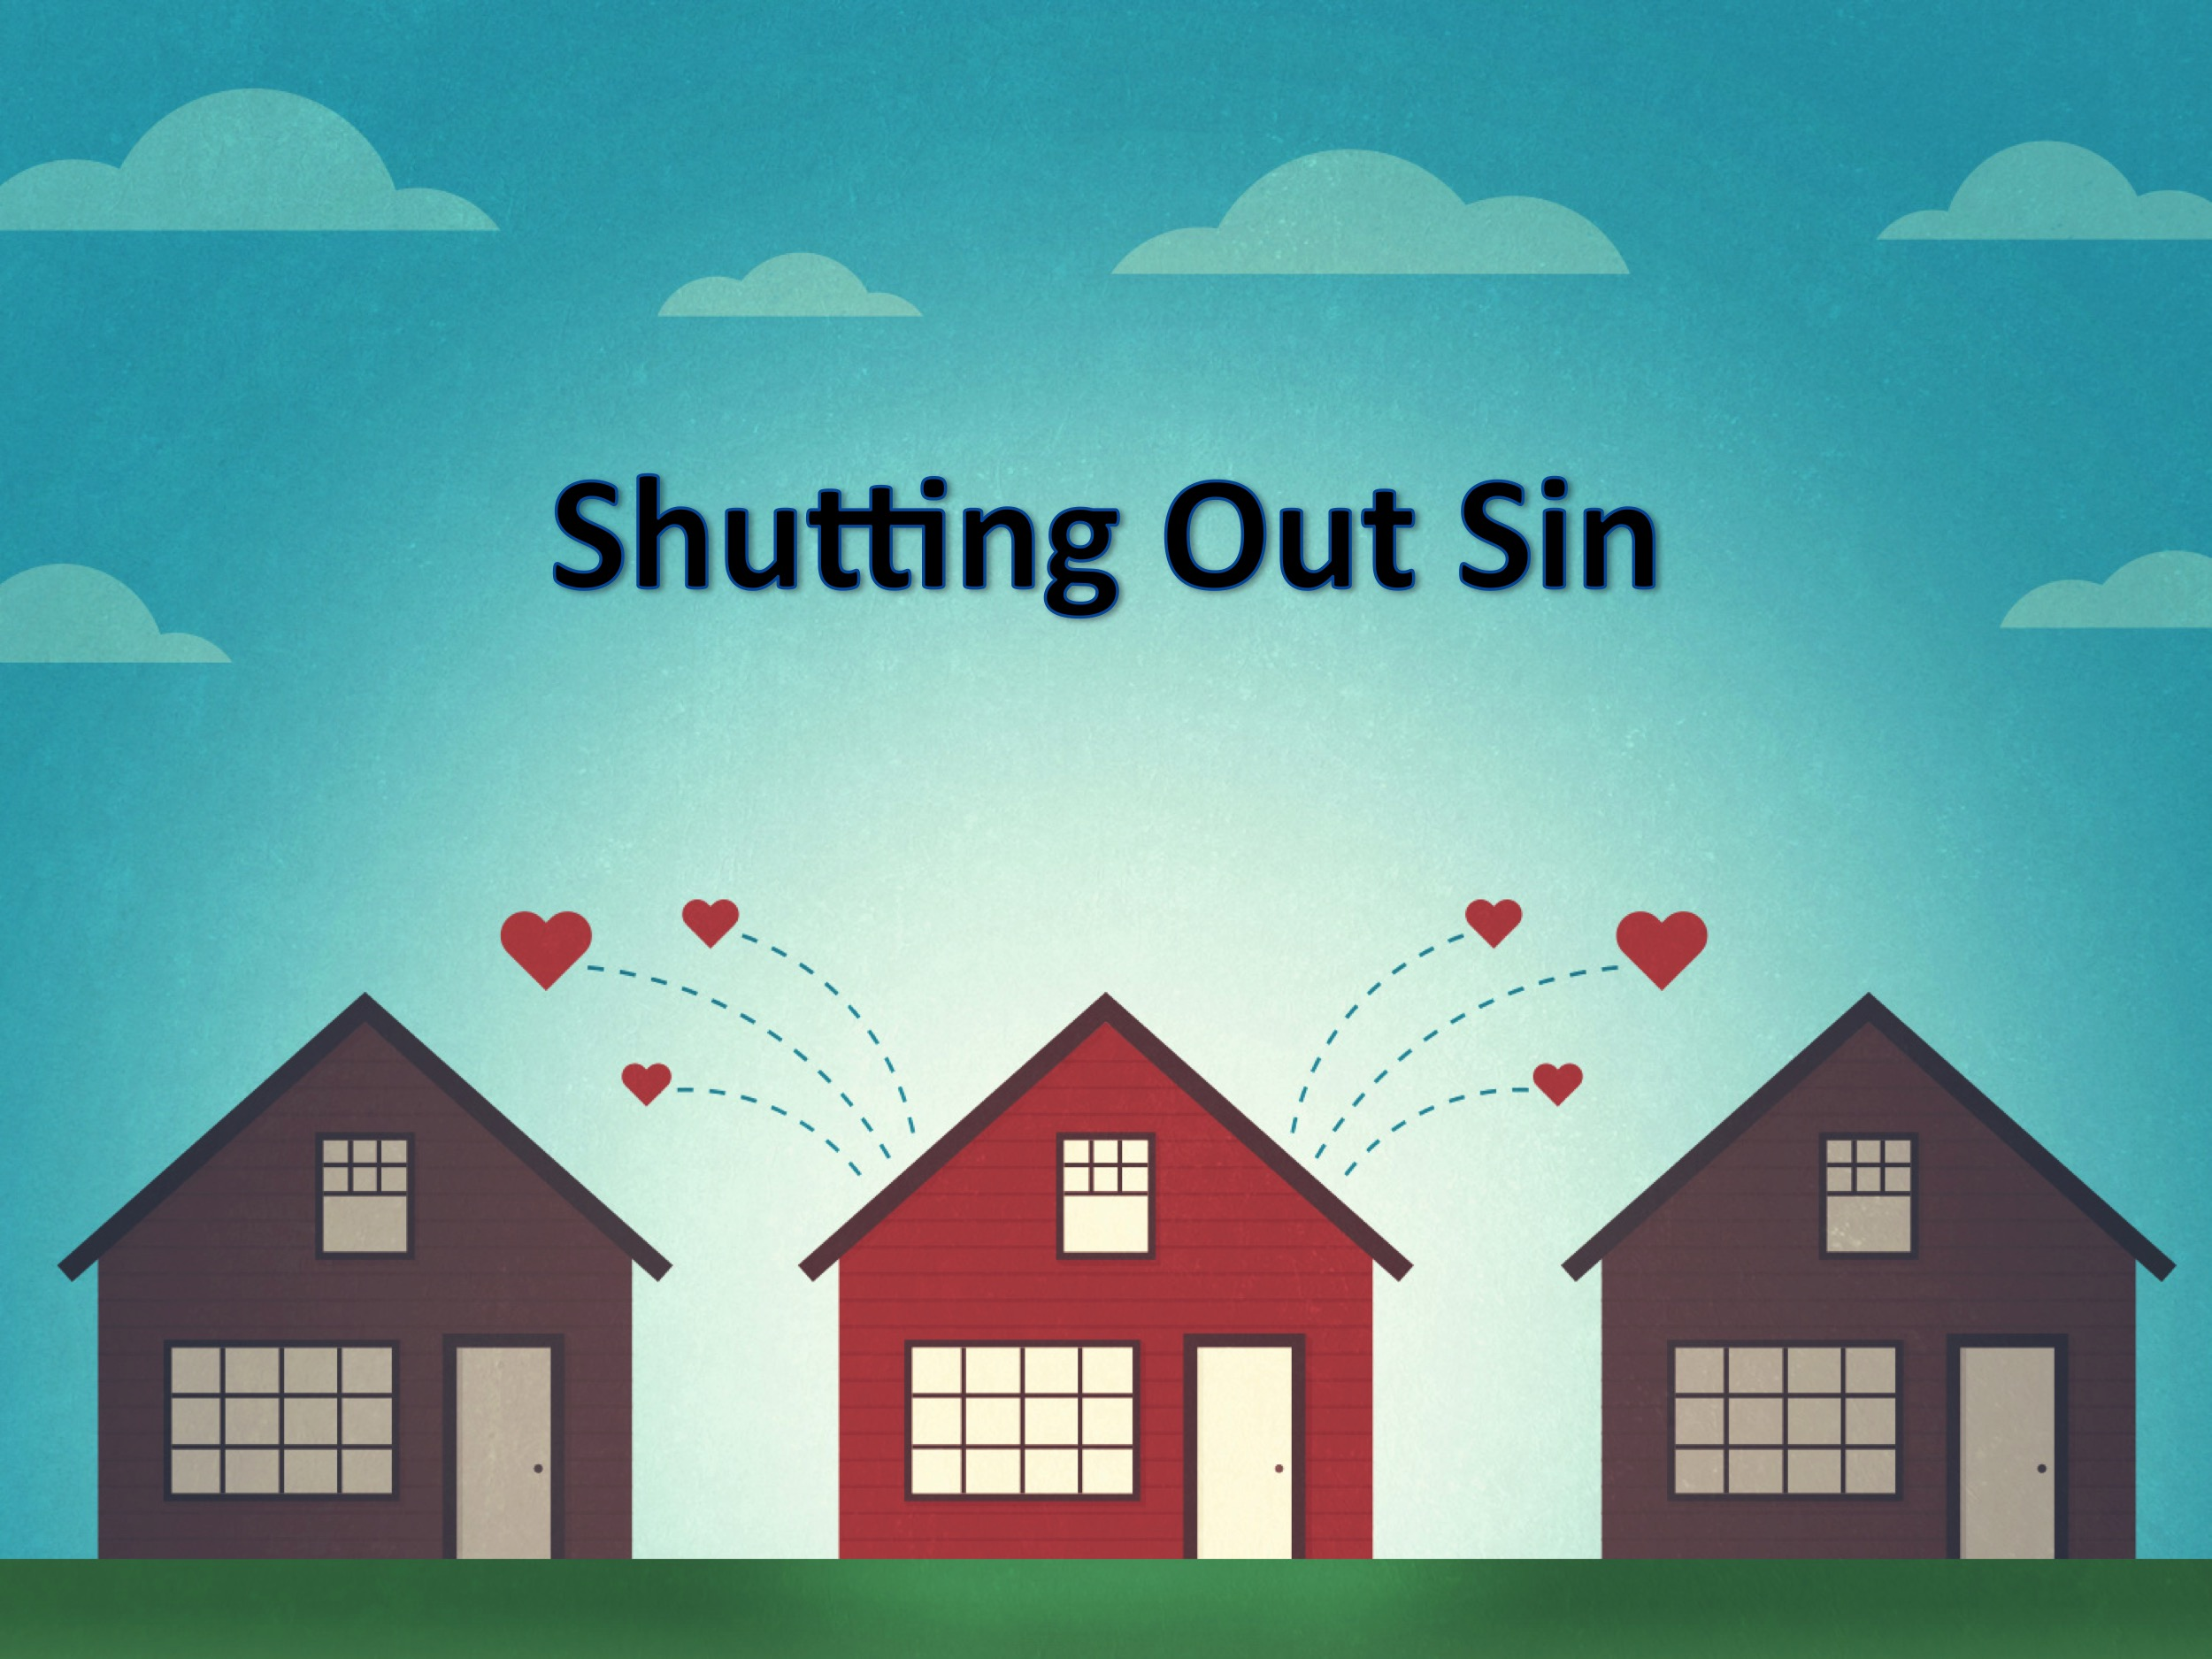 Shutting Out Sin P3 7/24/2017 8:36:06 AM